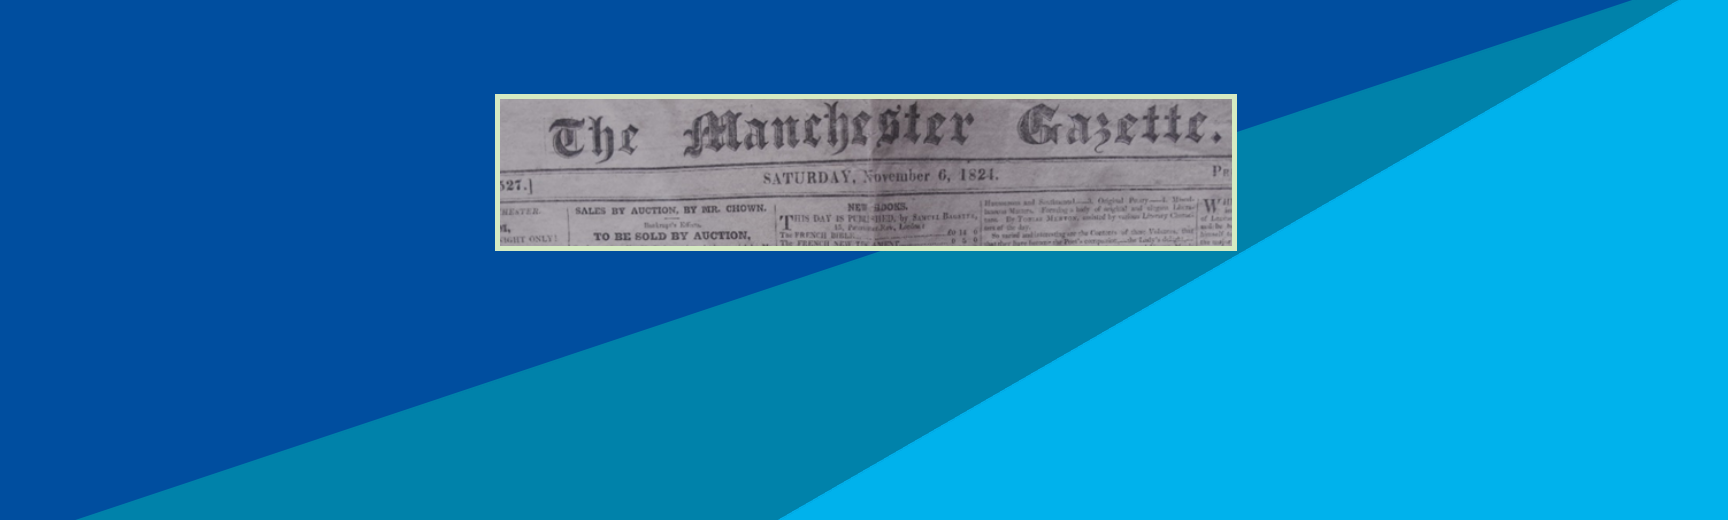 manchester gazette banner new